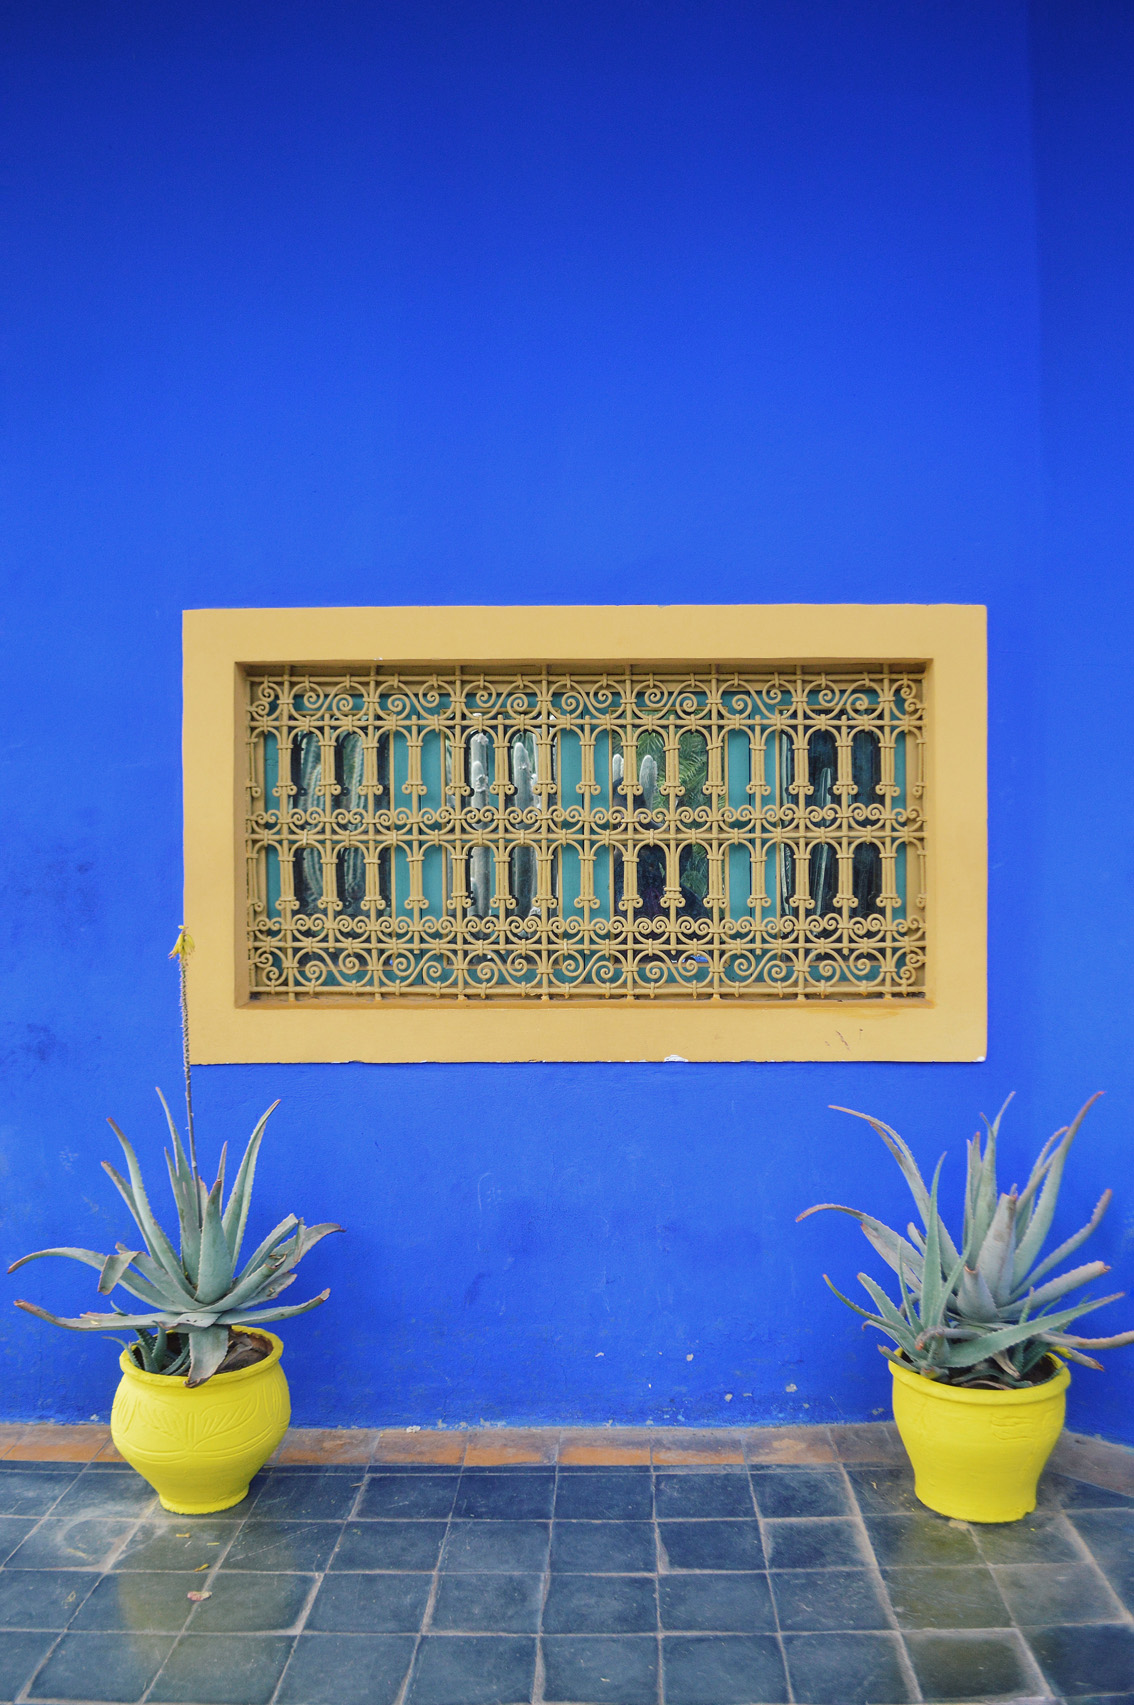 7 Jardin Majorelle - a magical place in Marrakech.